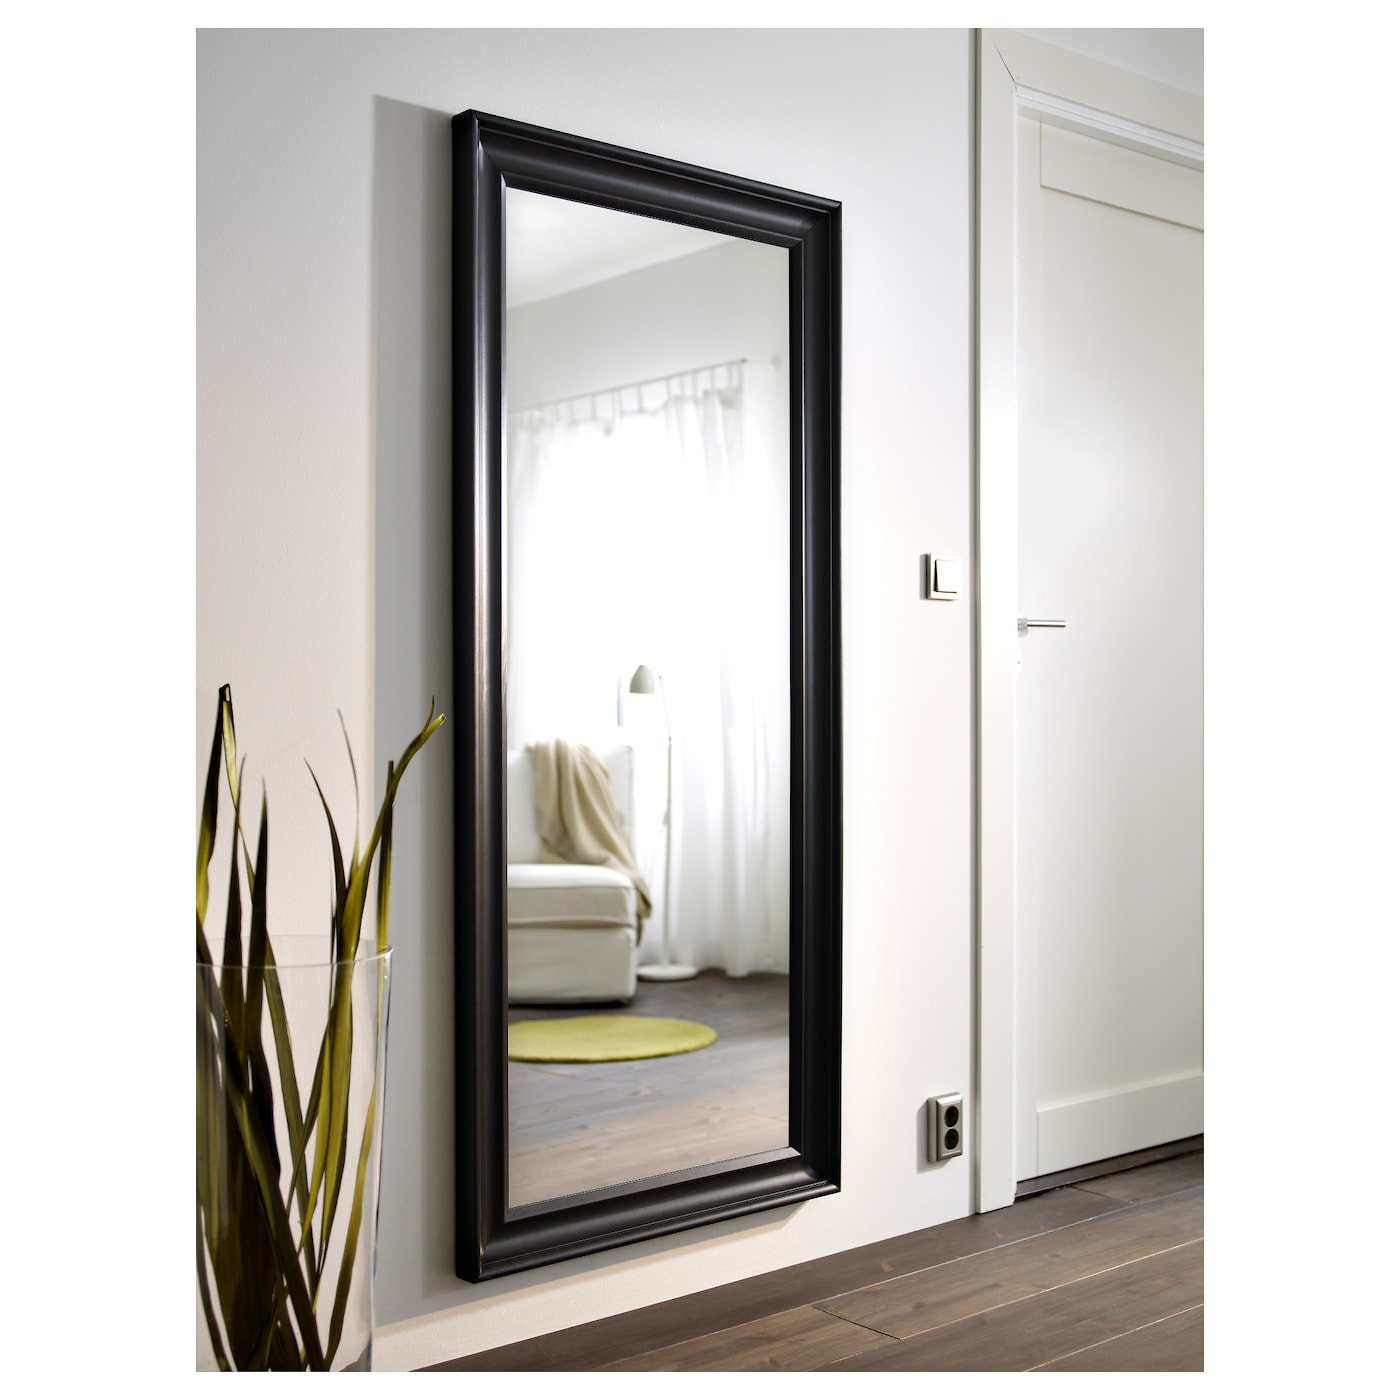 Hemnes mirror black brown 74x165 cm ikea for Where can i find mirrors